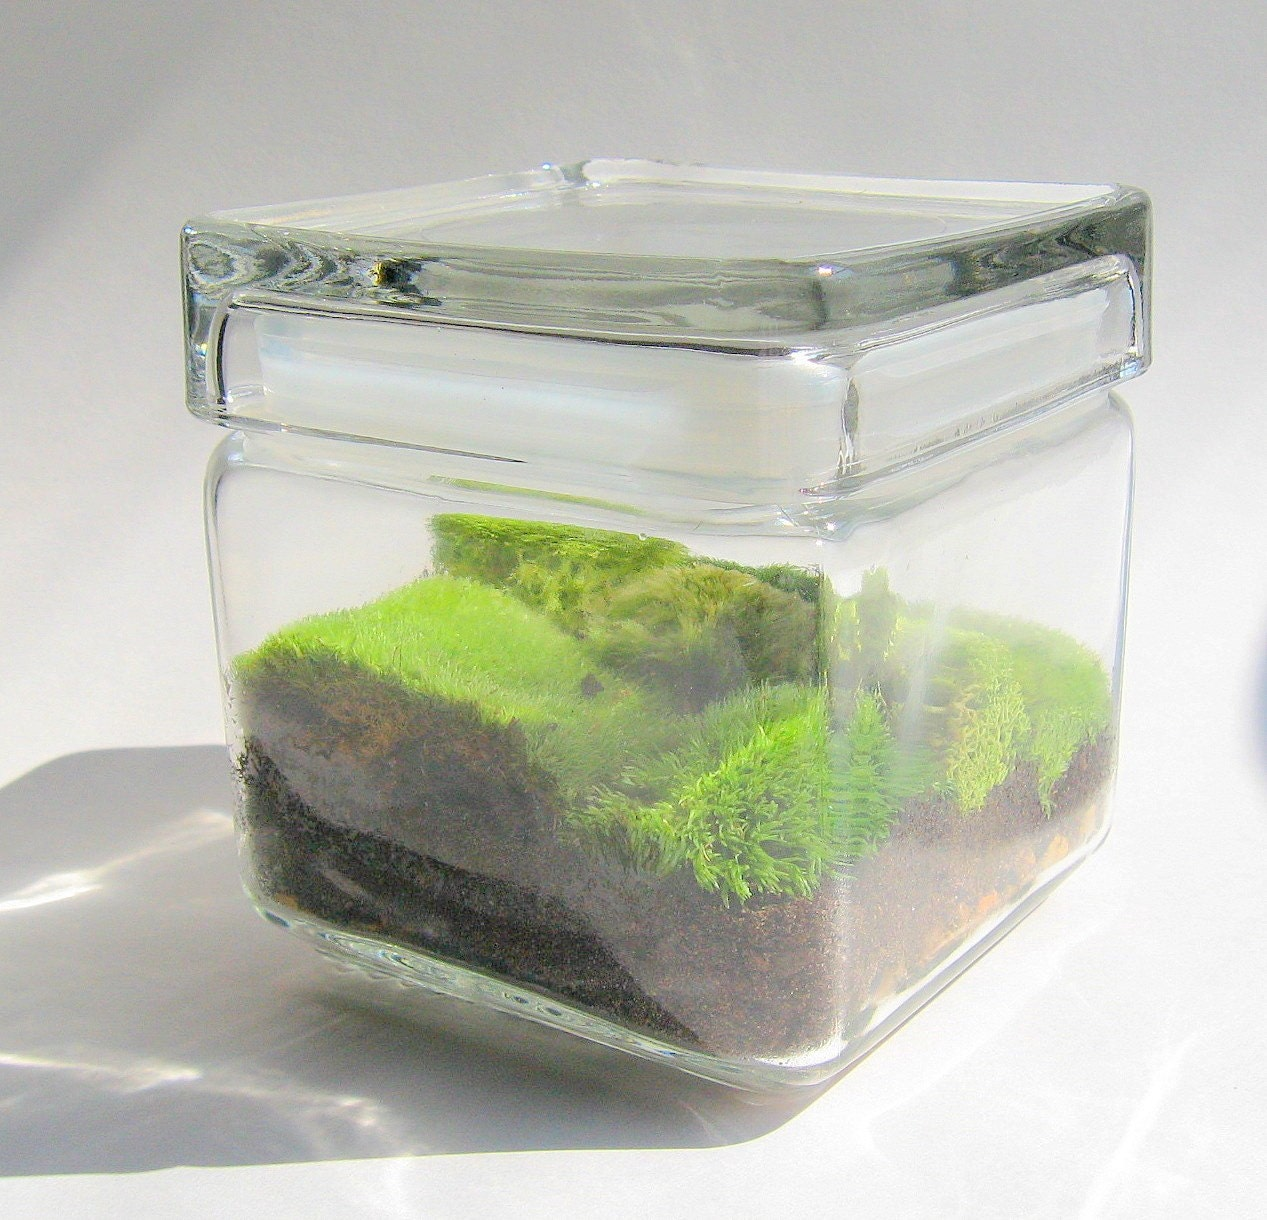 Mini Moss Terrarium (Galatea)